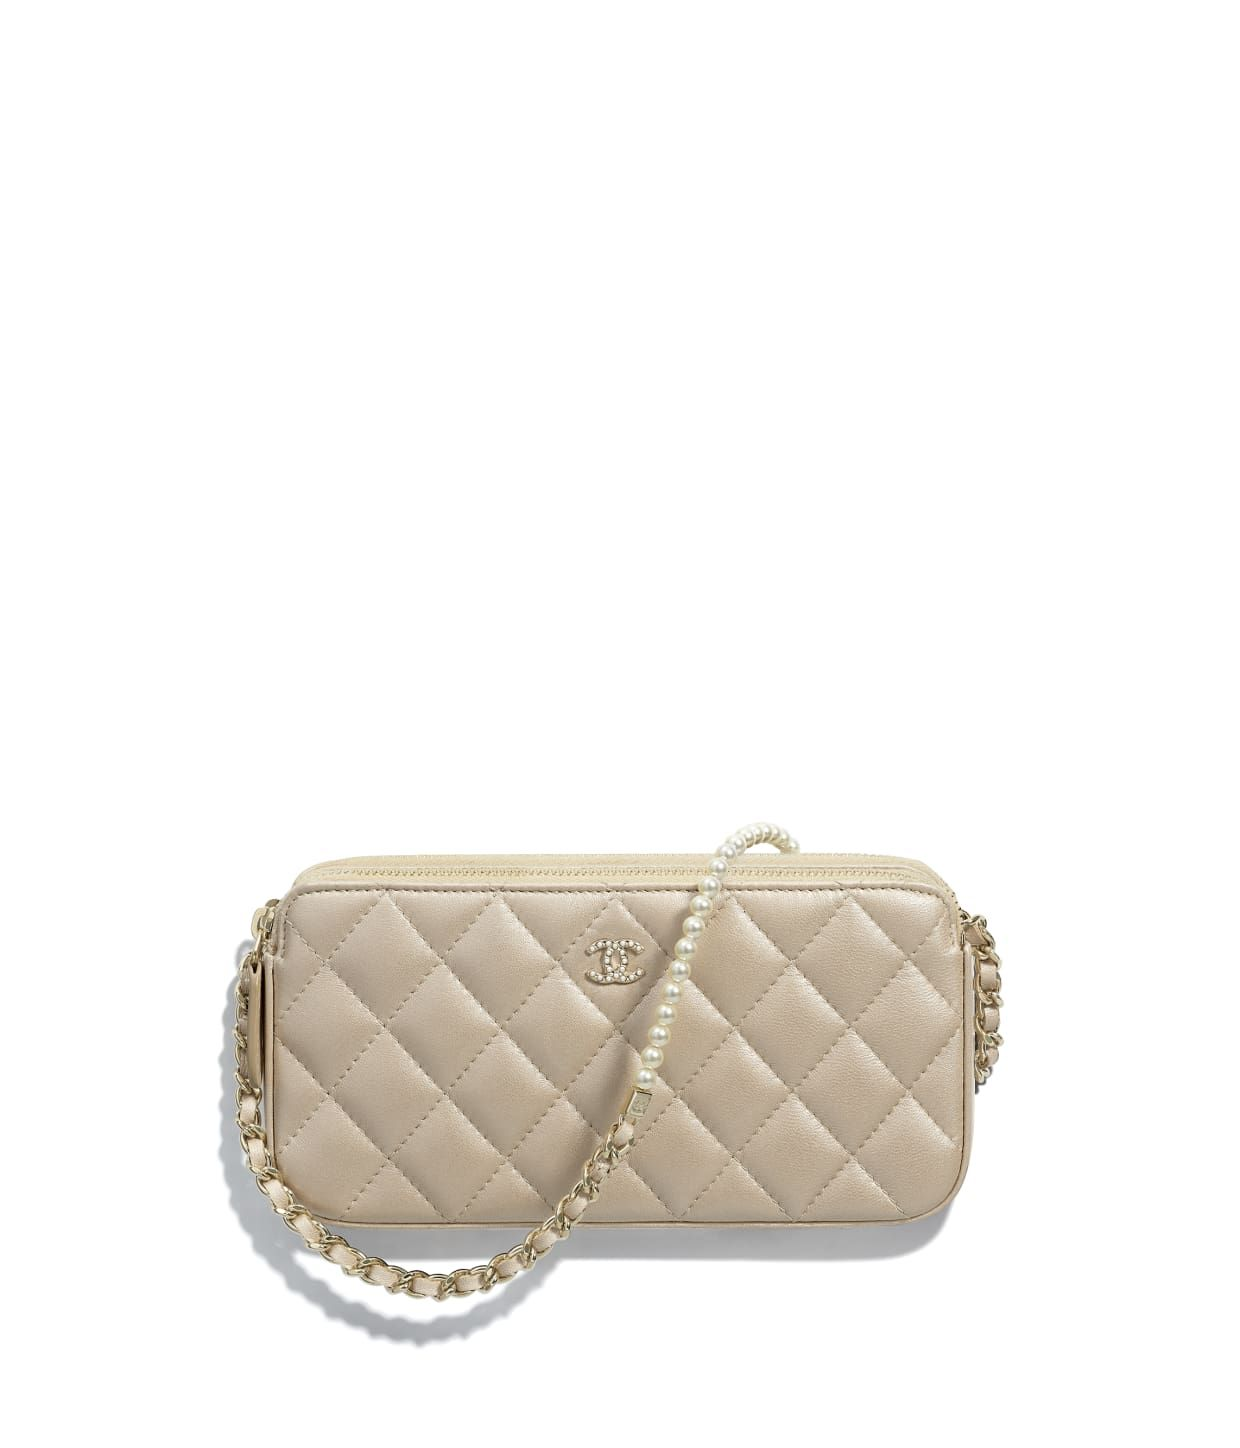 6beb7e95903a Discover the CHANEL Iridescent Lambskin   Gold-Tone Metal Beige Clutch with  Chain